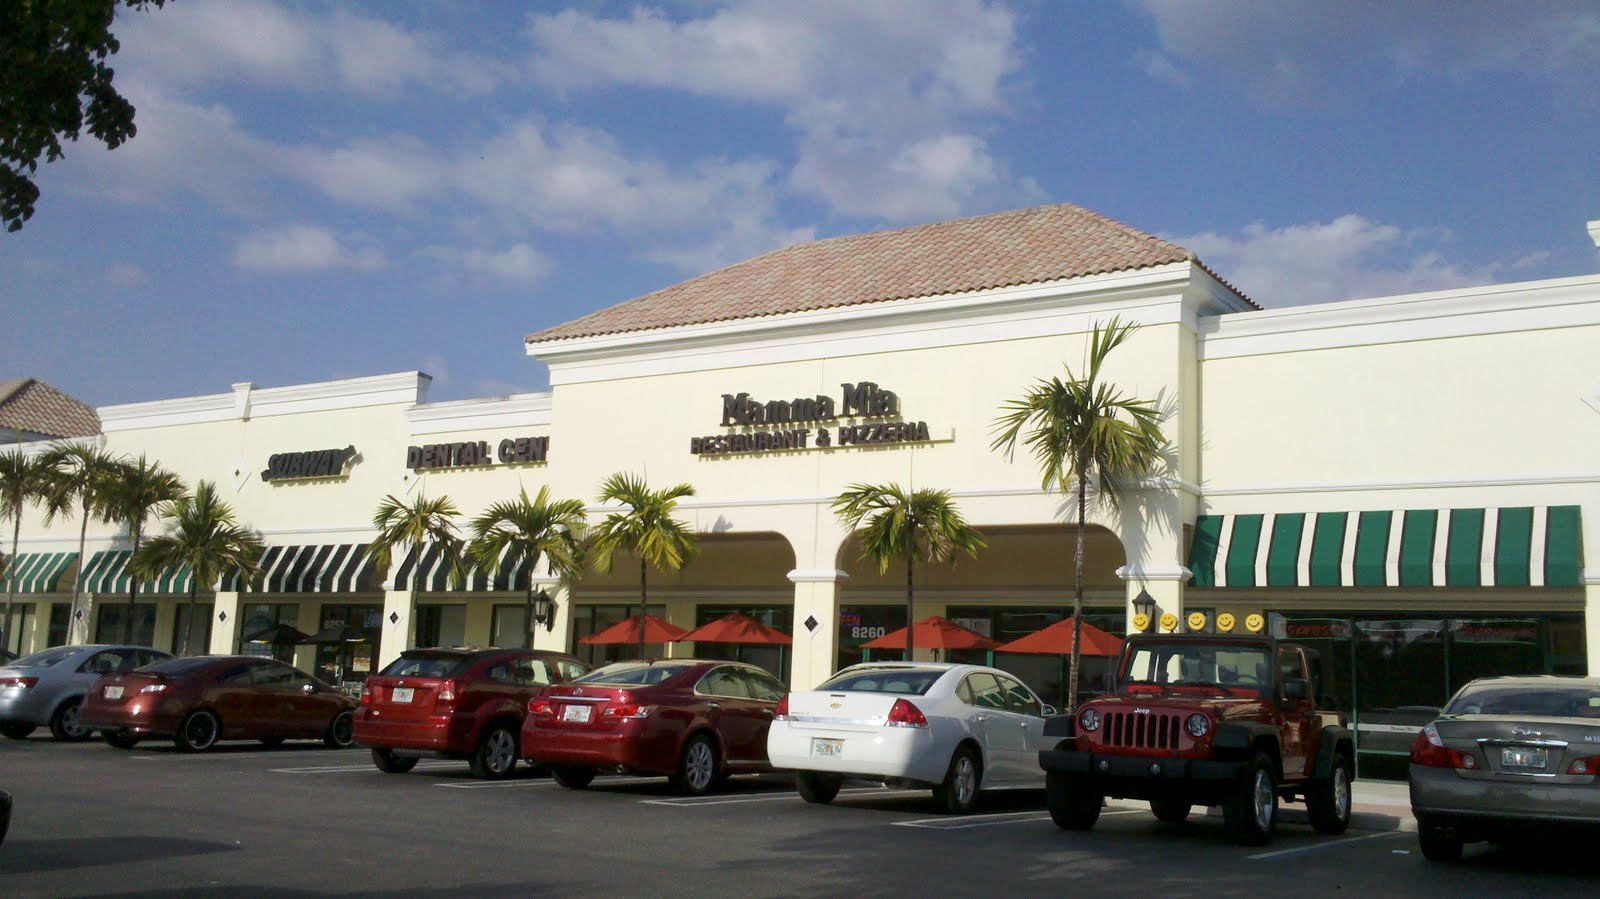 Boynton Beach Fl Was Somewhat Disointing Those Living Near The Area Or Visiting Should Definitely Check Out Following Restaurant Mamma Mia